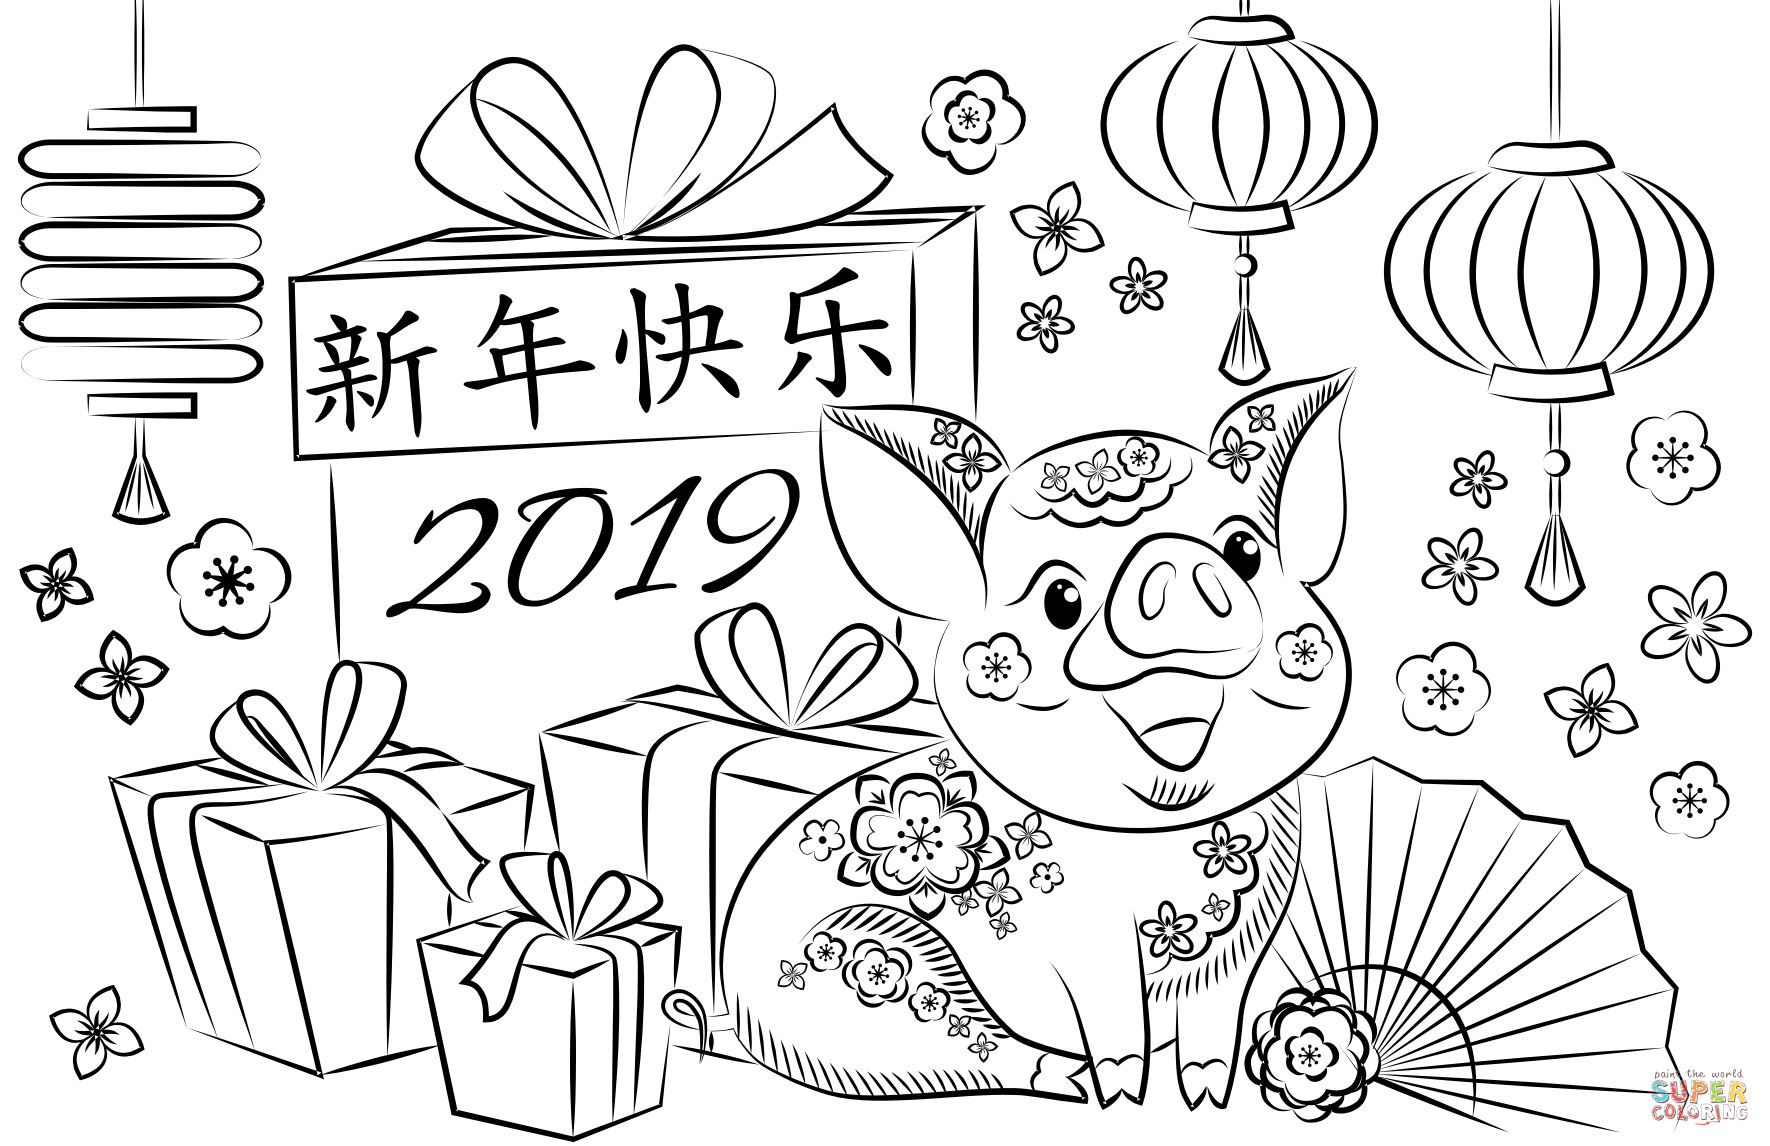 2019 Year Of The Pig Coloring Page   Free Printable Coloring Pages - Pig Coloring Sheets Free Printable